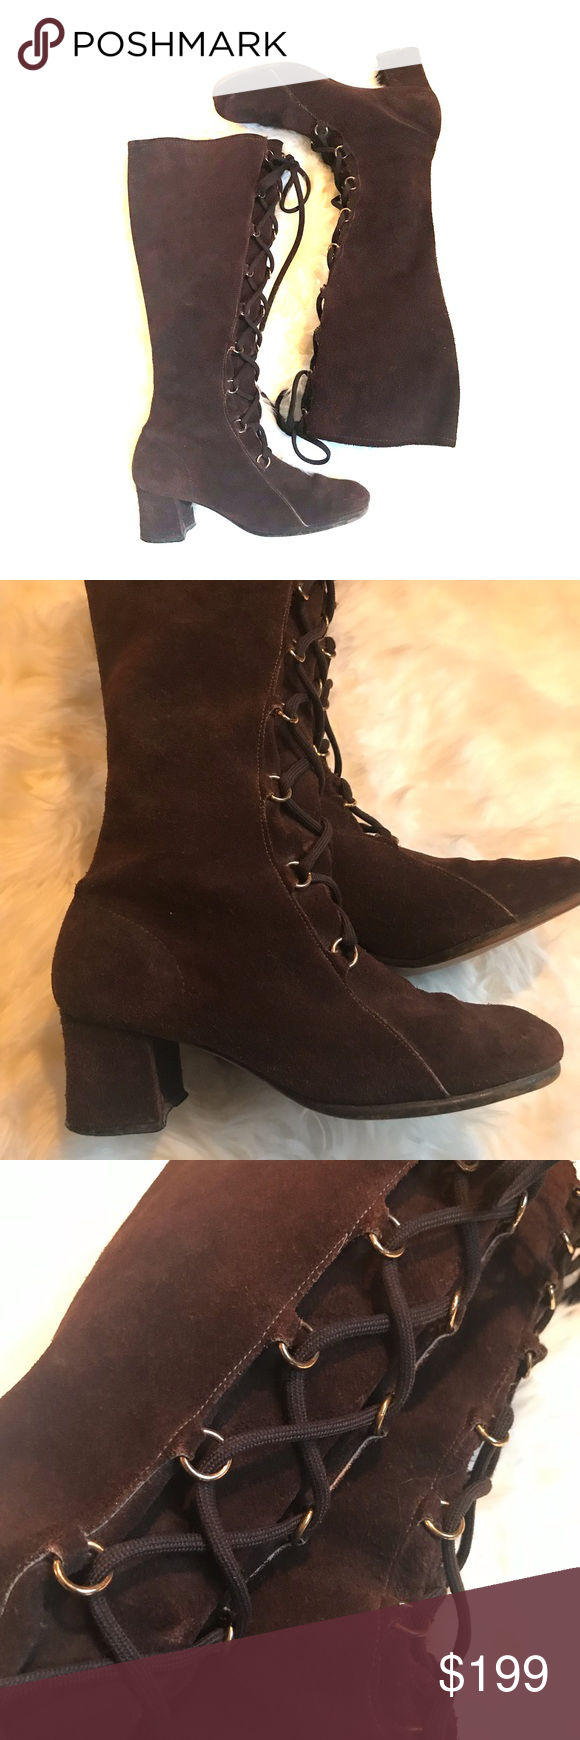 ea4d8be8b7b12 Vintage 60's Suede Lace Up Knee High GoGo Boots Very cool and ...